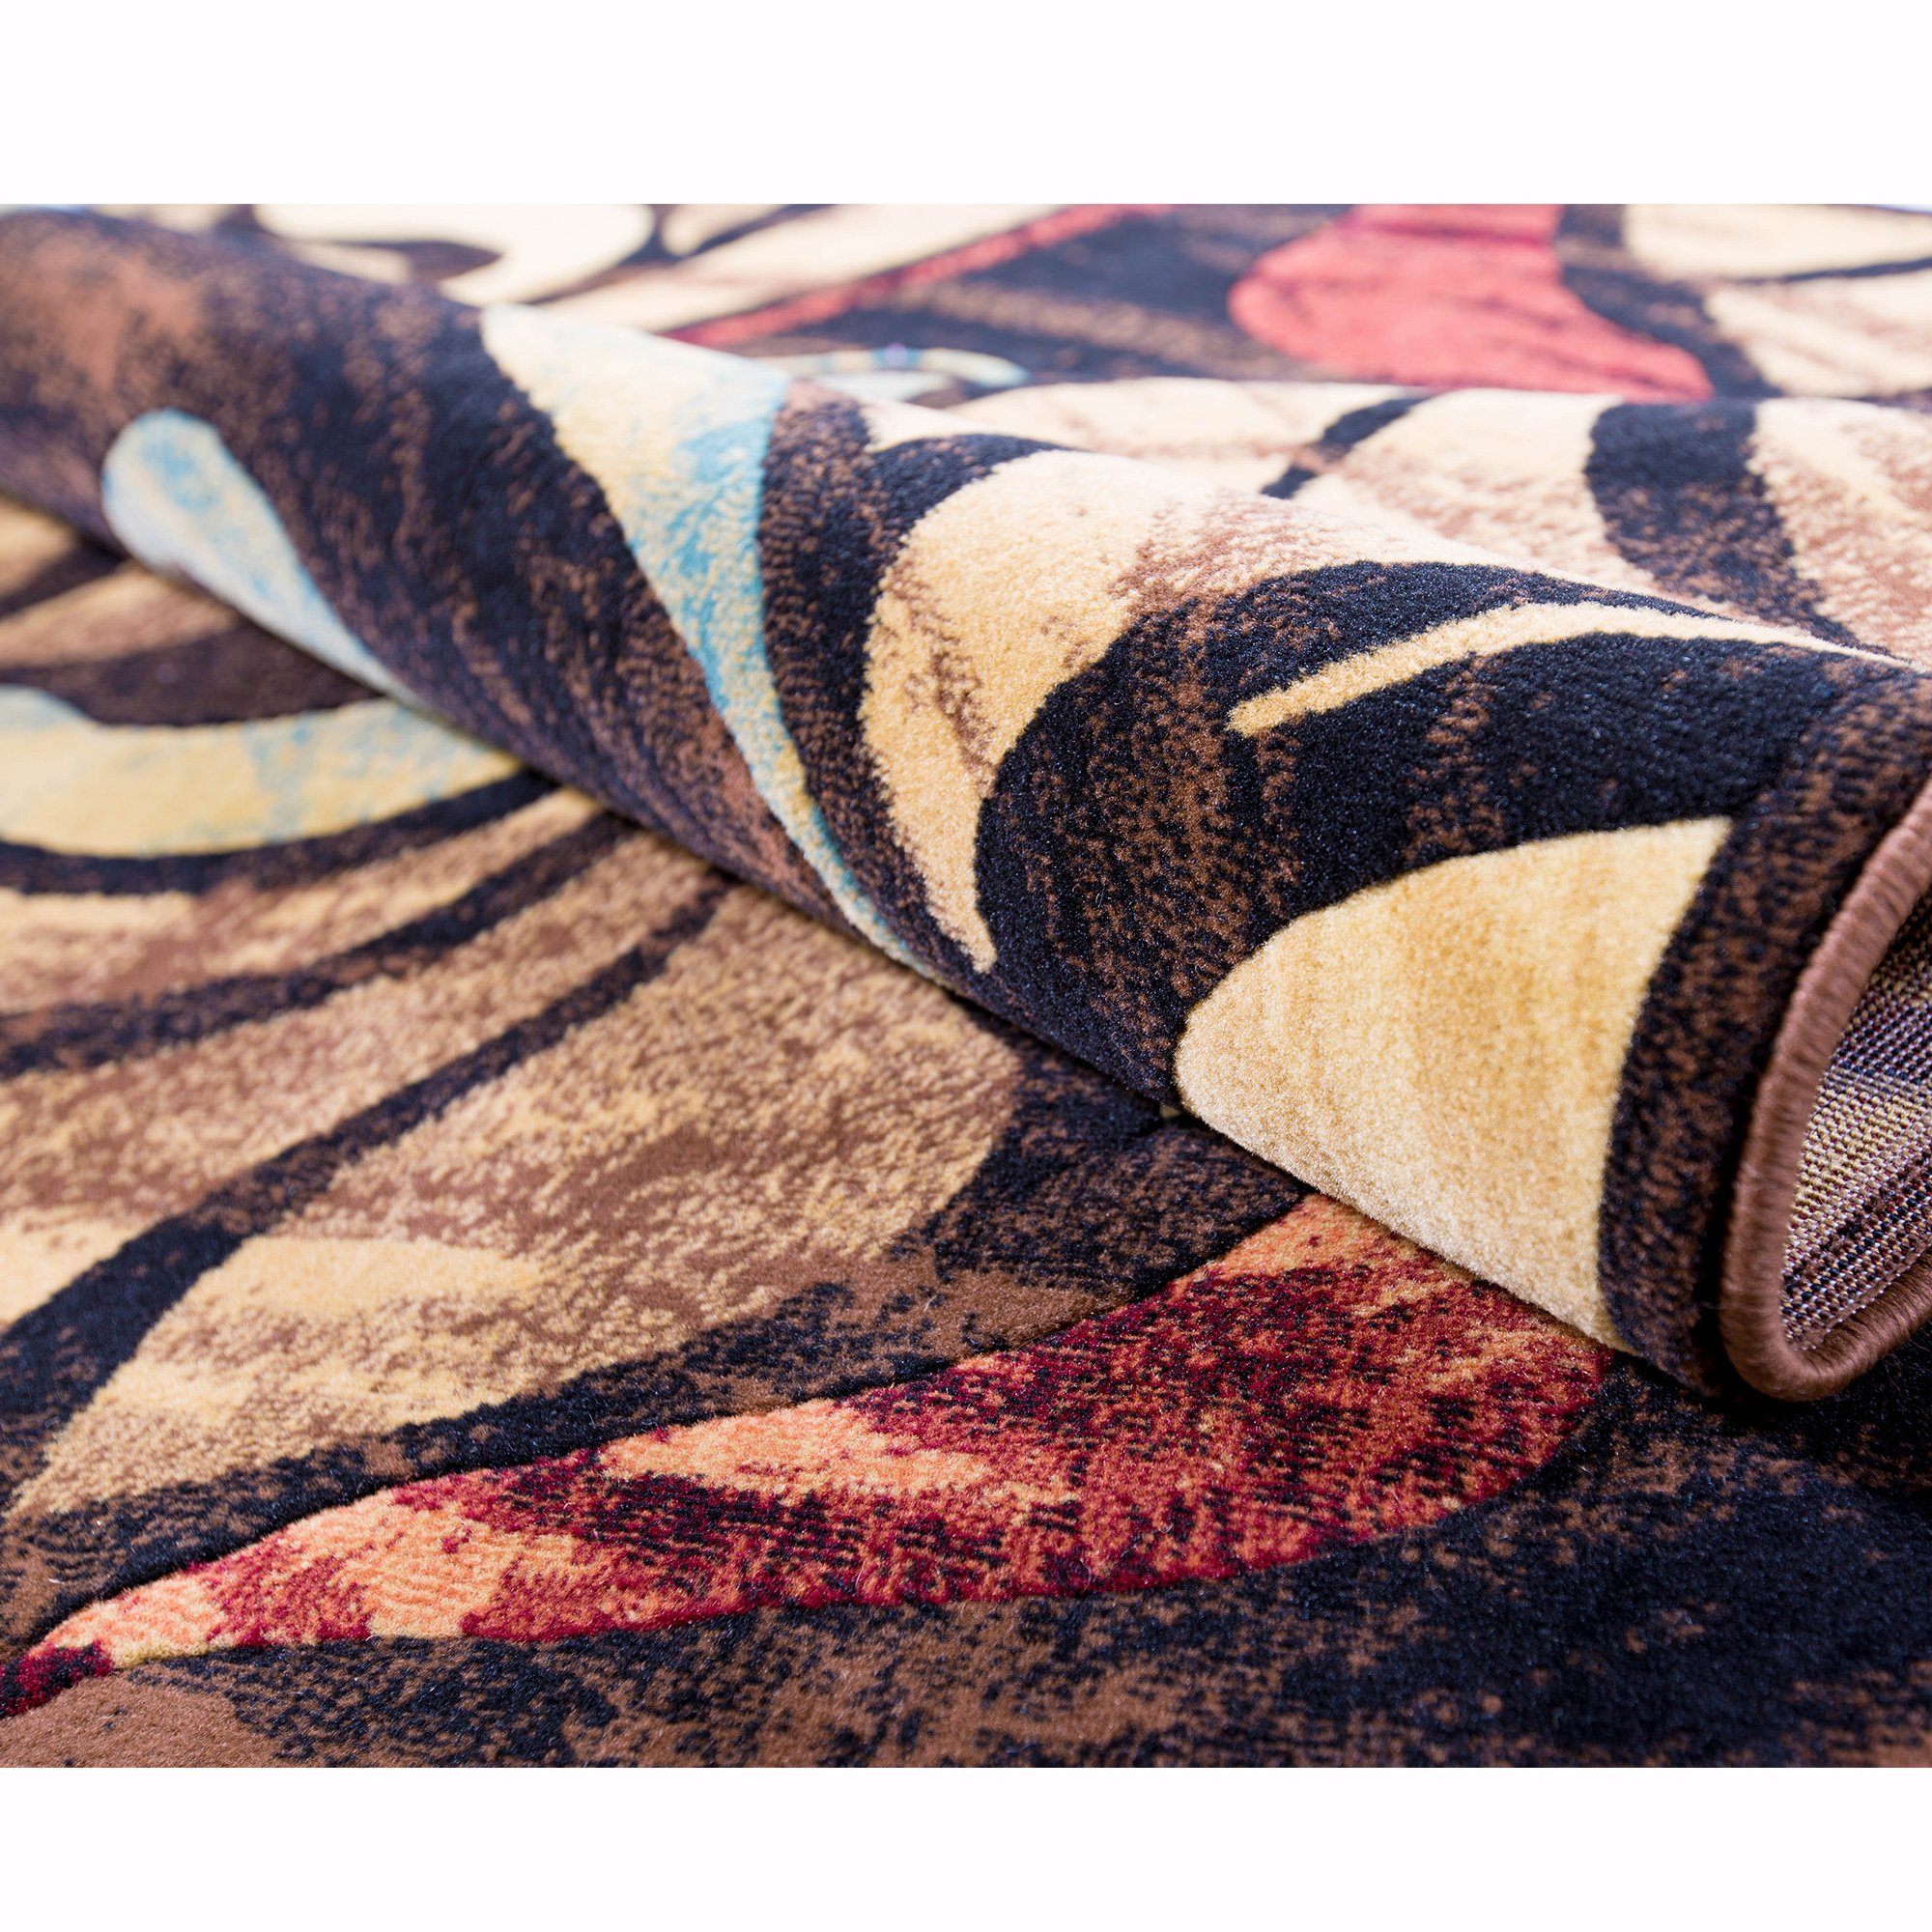 Home Dynamix Catalina - Quality Drop-Stitch Contemporary Modern Area Rug 7'10 x 10'5, Multi-Colored